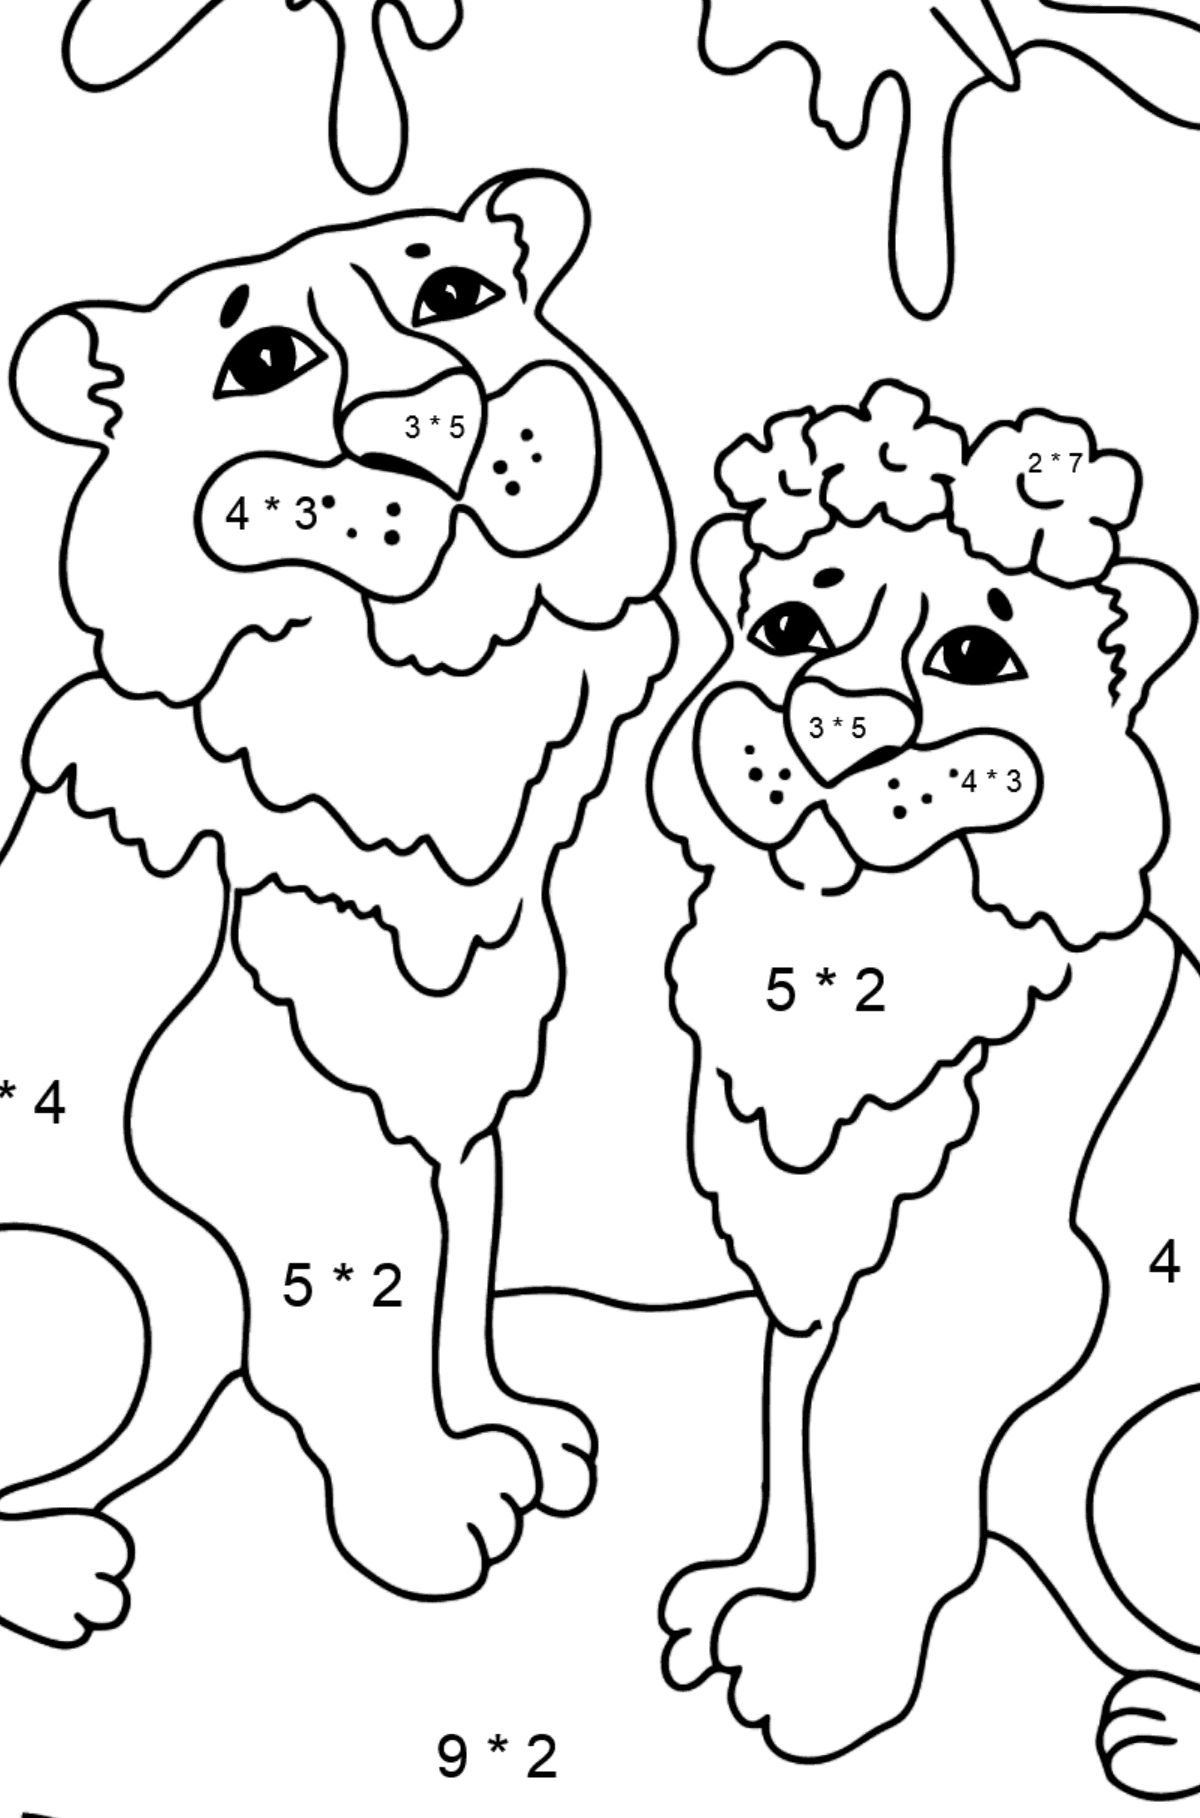 Coloring Page - A Tiger with a Tigress - Math Coloring - Multiplication for Kids